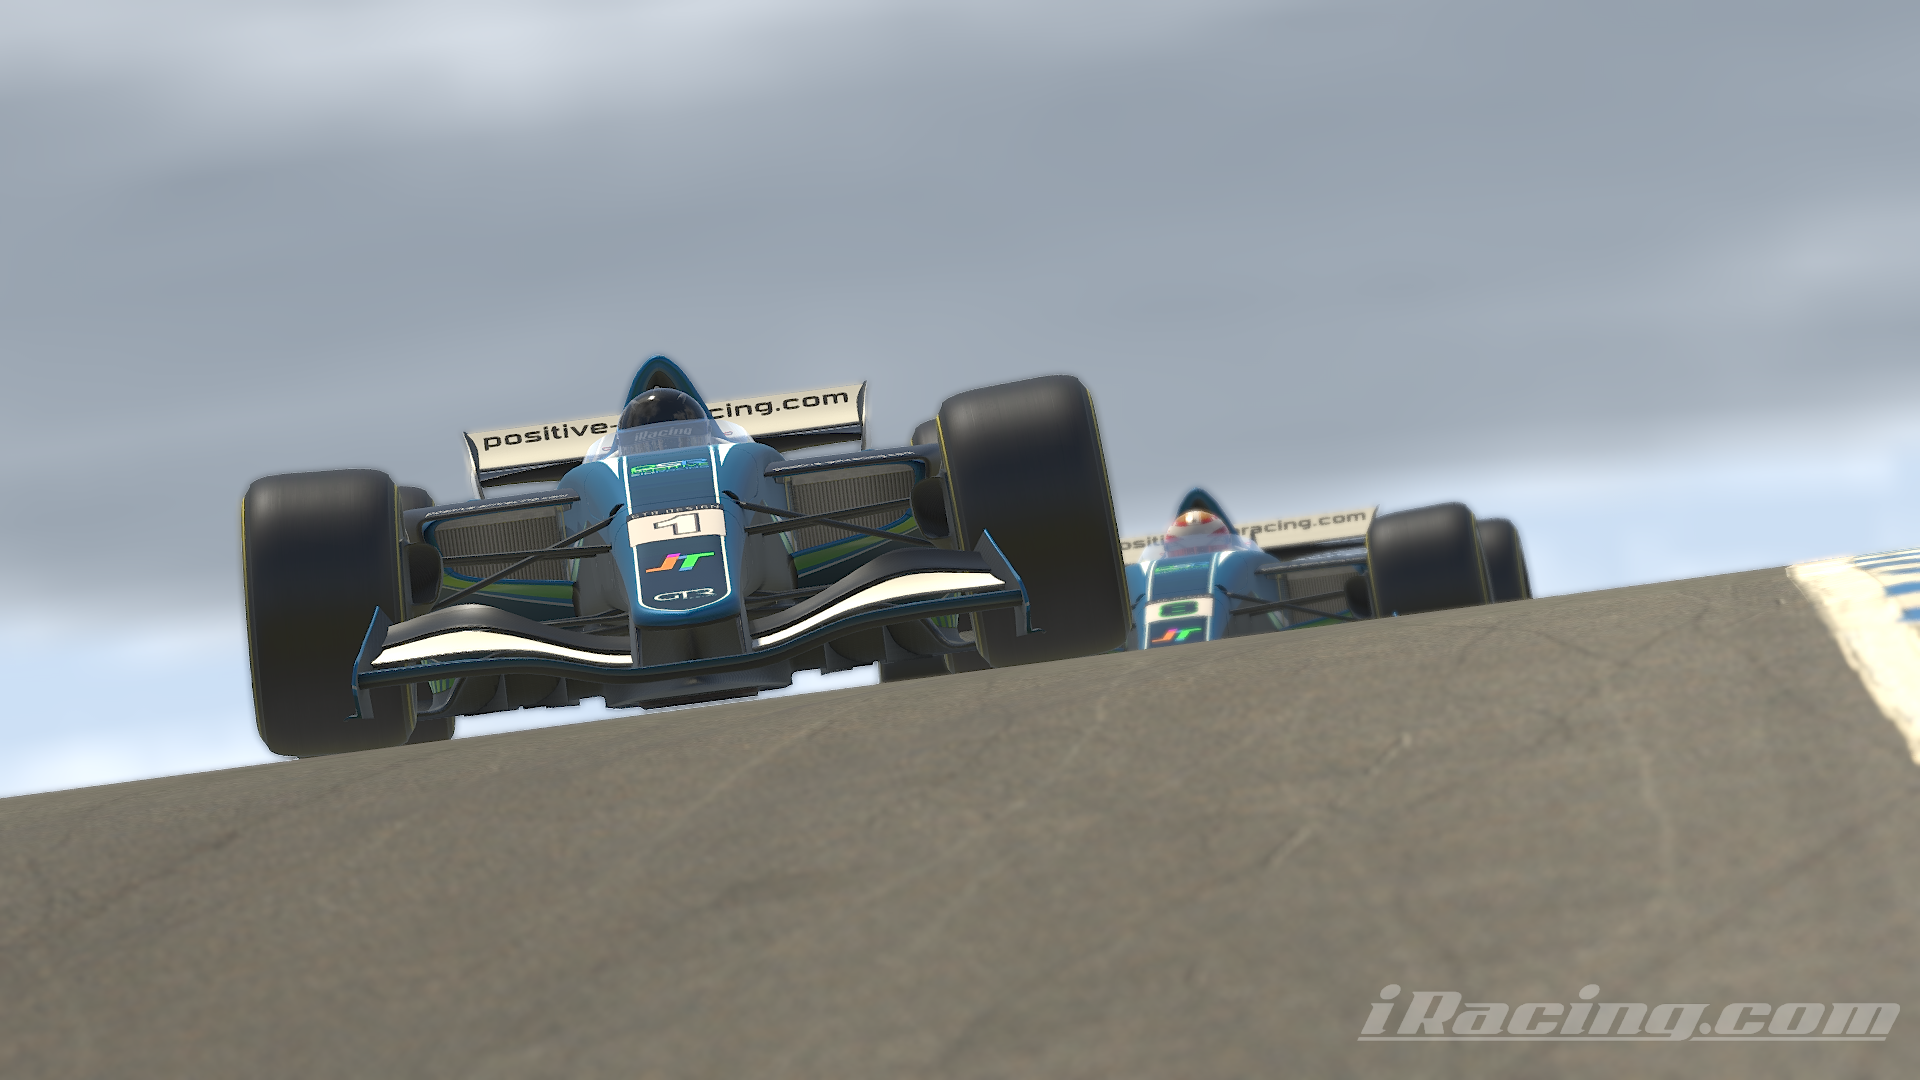 Positive Simracing drivers Tim Delisle and Greg Olson finished in P1 and P2 in the first season of the Dallara iR-01 series